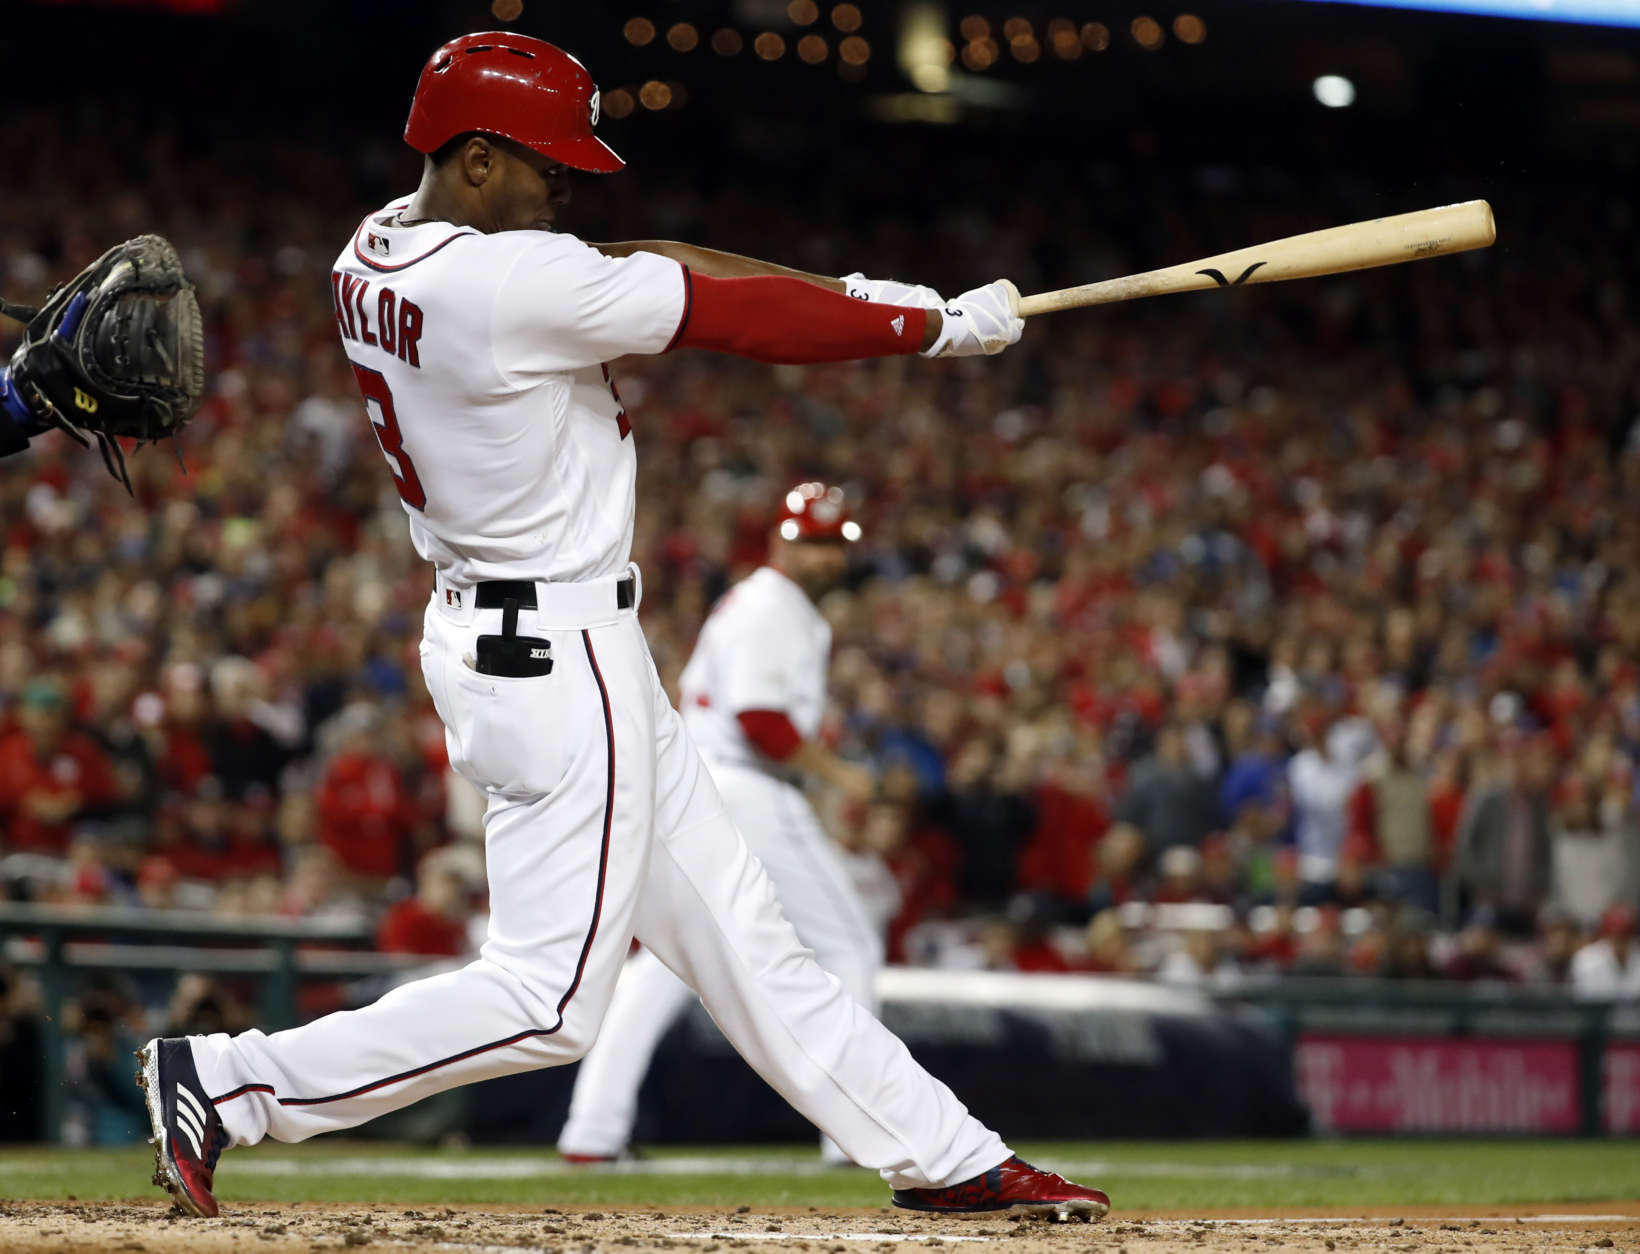 Washington Nationals' Michael A. Taylor (3) bats during Game 5 of baseball's National League Division Series against the Chicago Cubs, at Nationals Park, Thursday, Oct. 12, 2017, in Washington.. (AP Photo/Alex Brandon)